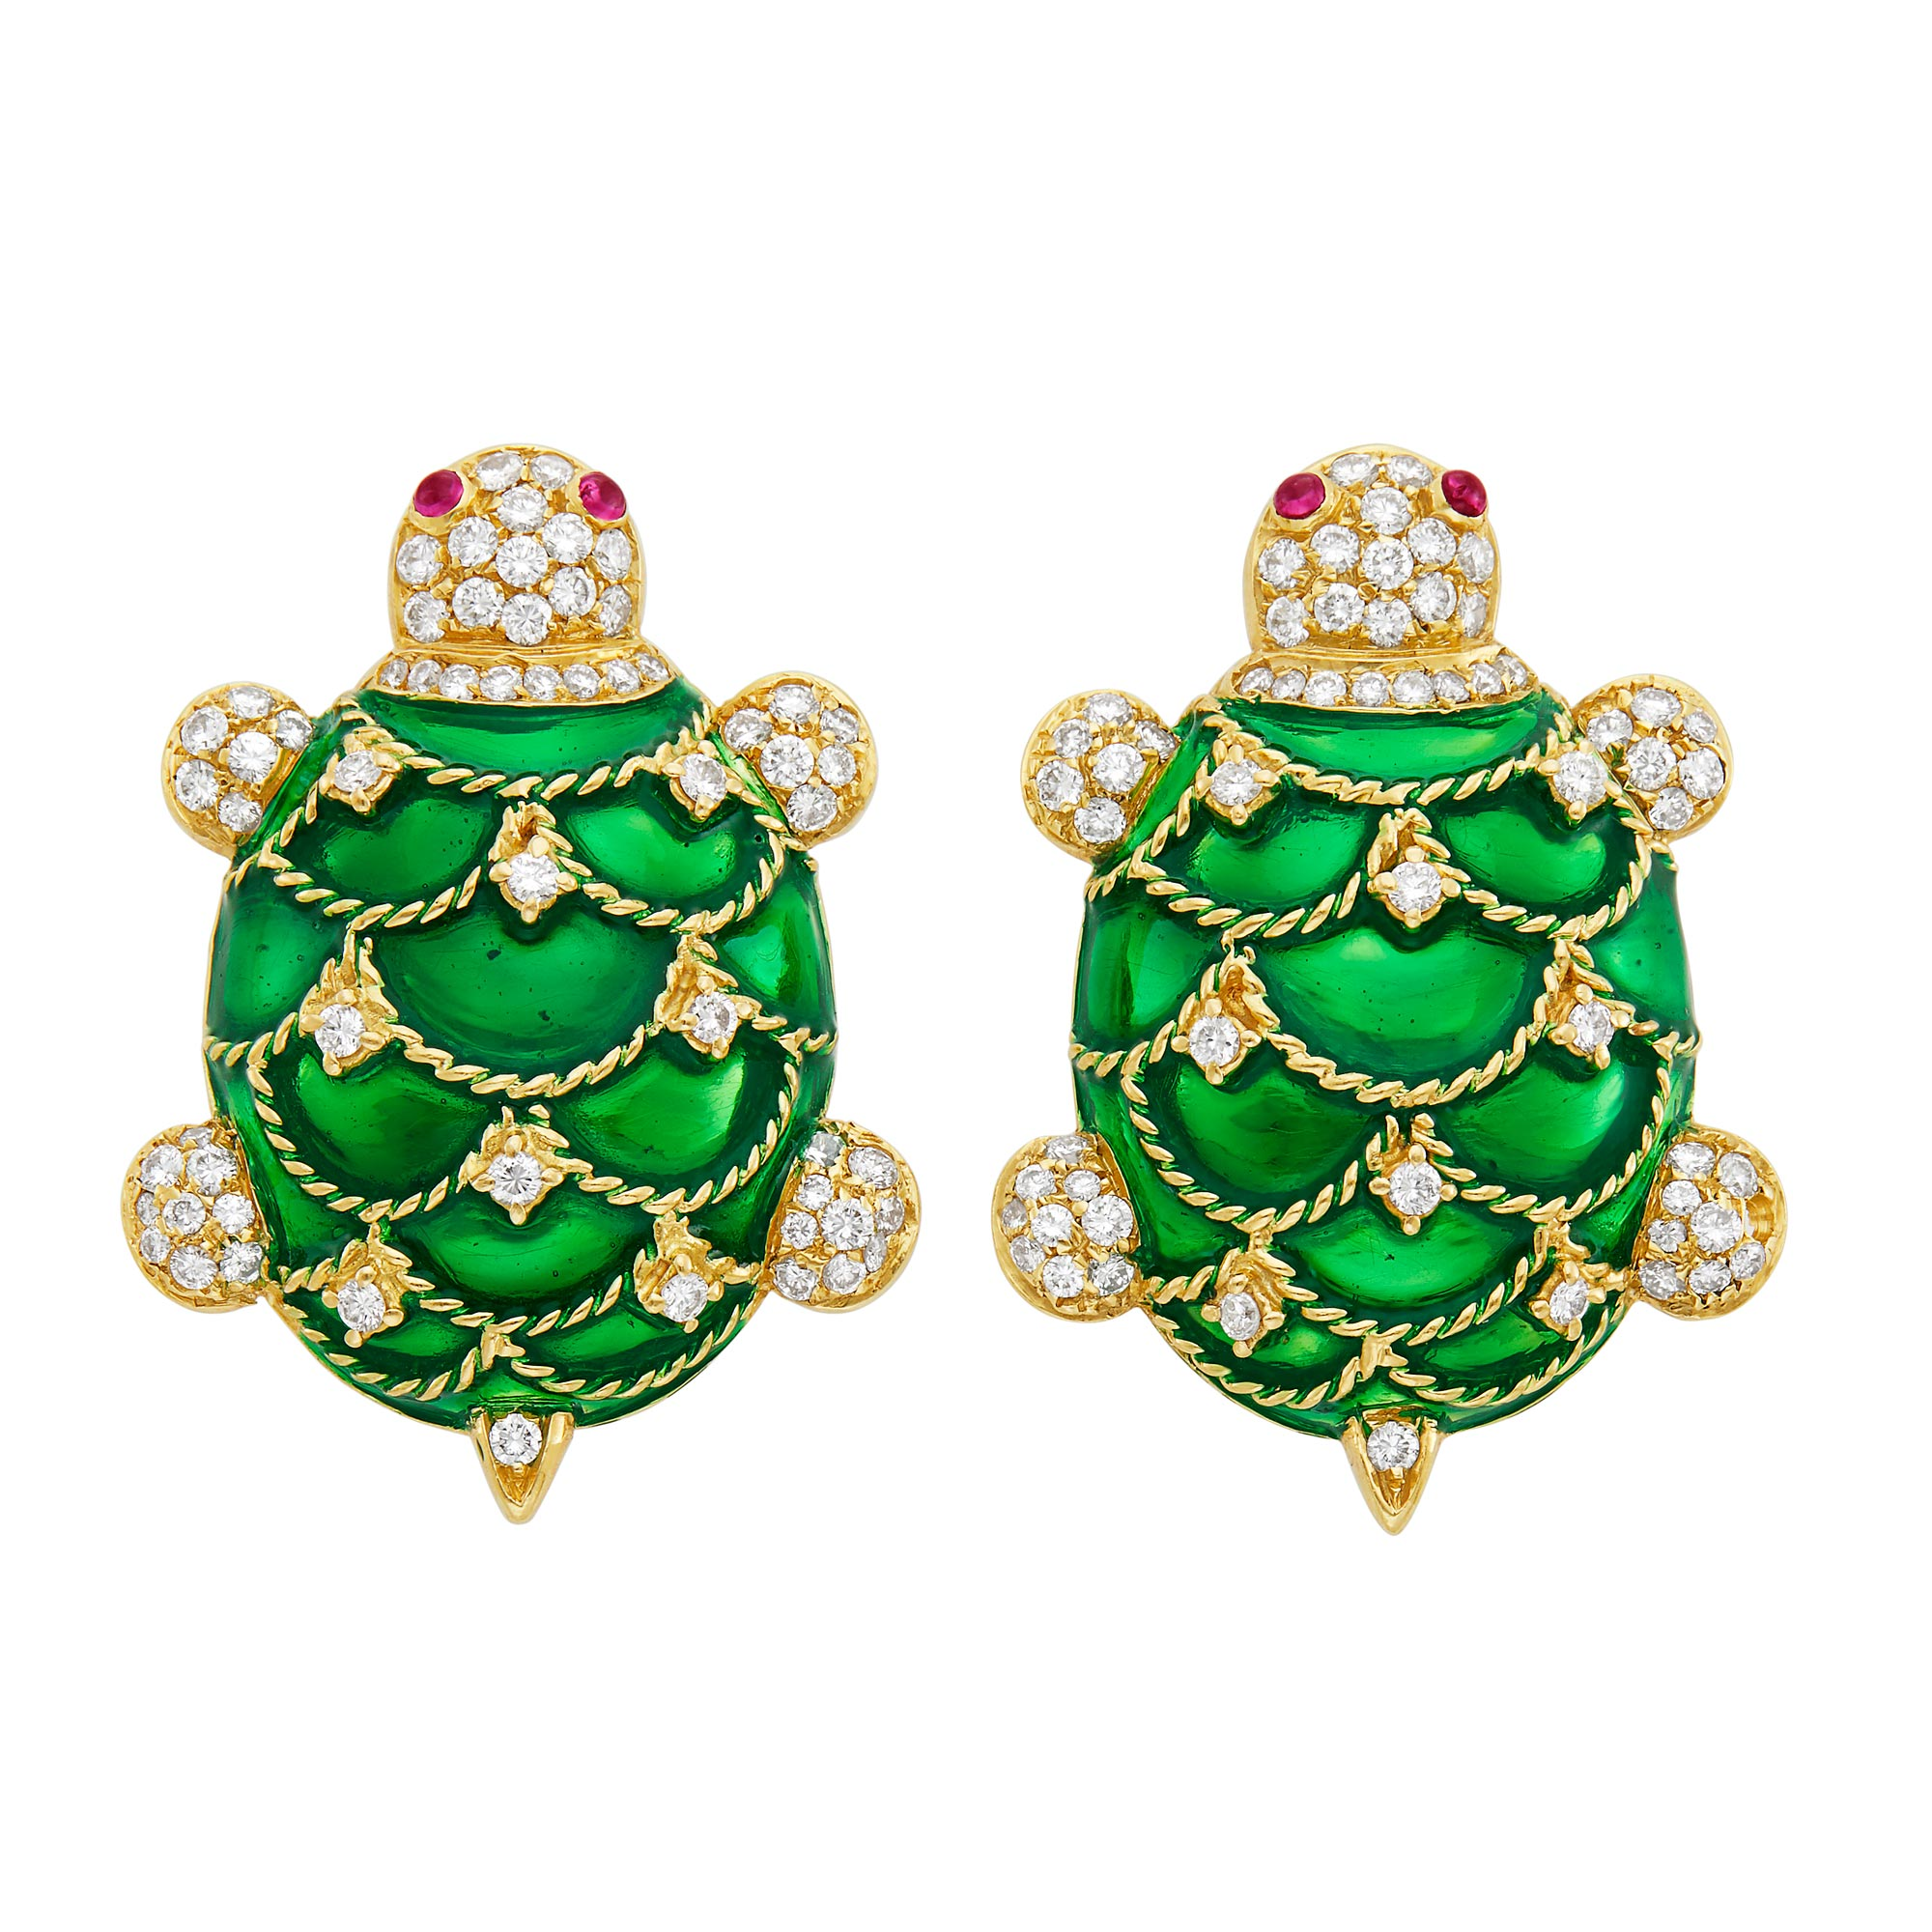 Lot image - Pair of Gold, Green Enamel and Diamond Turtle Cufflinks